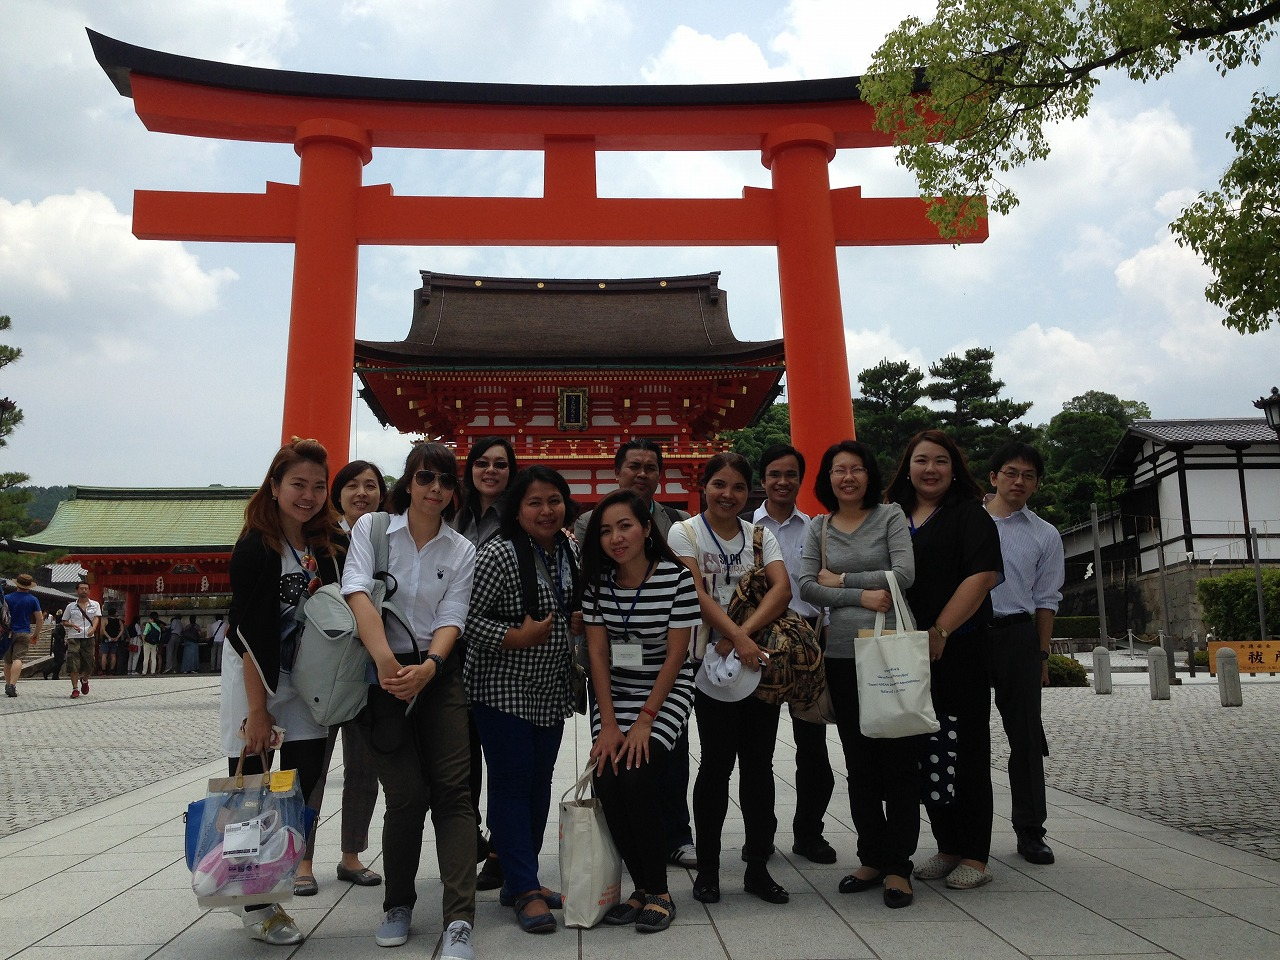 Sightseeing at Fushimiinaritaisha shrine (in Kyoto)